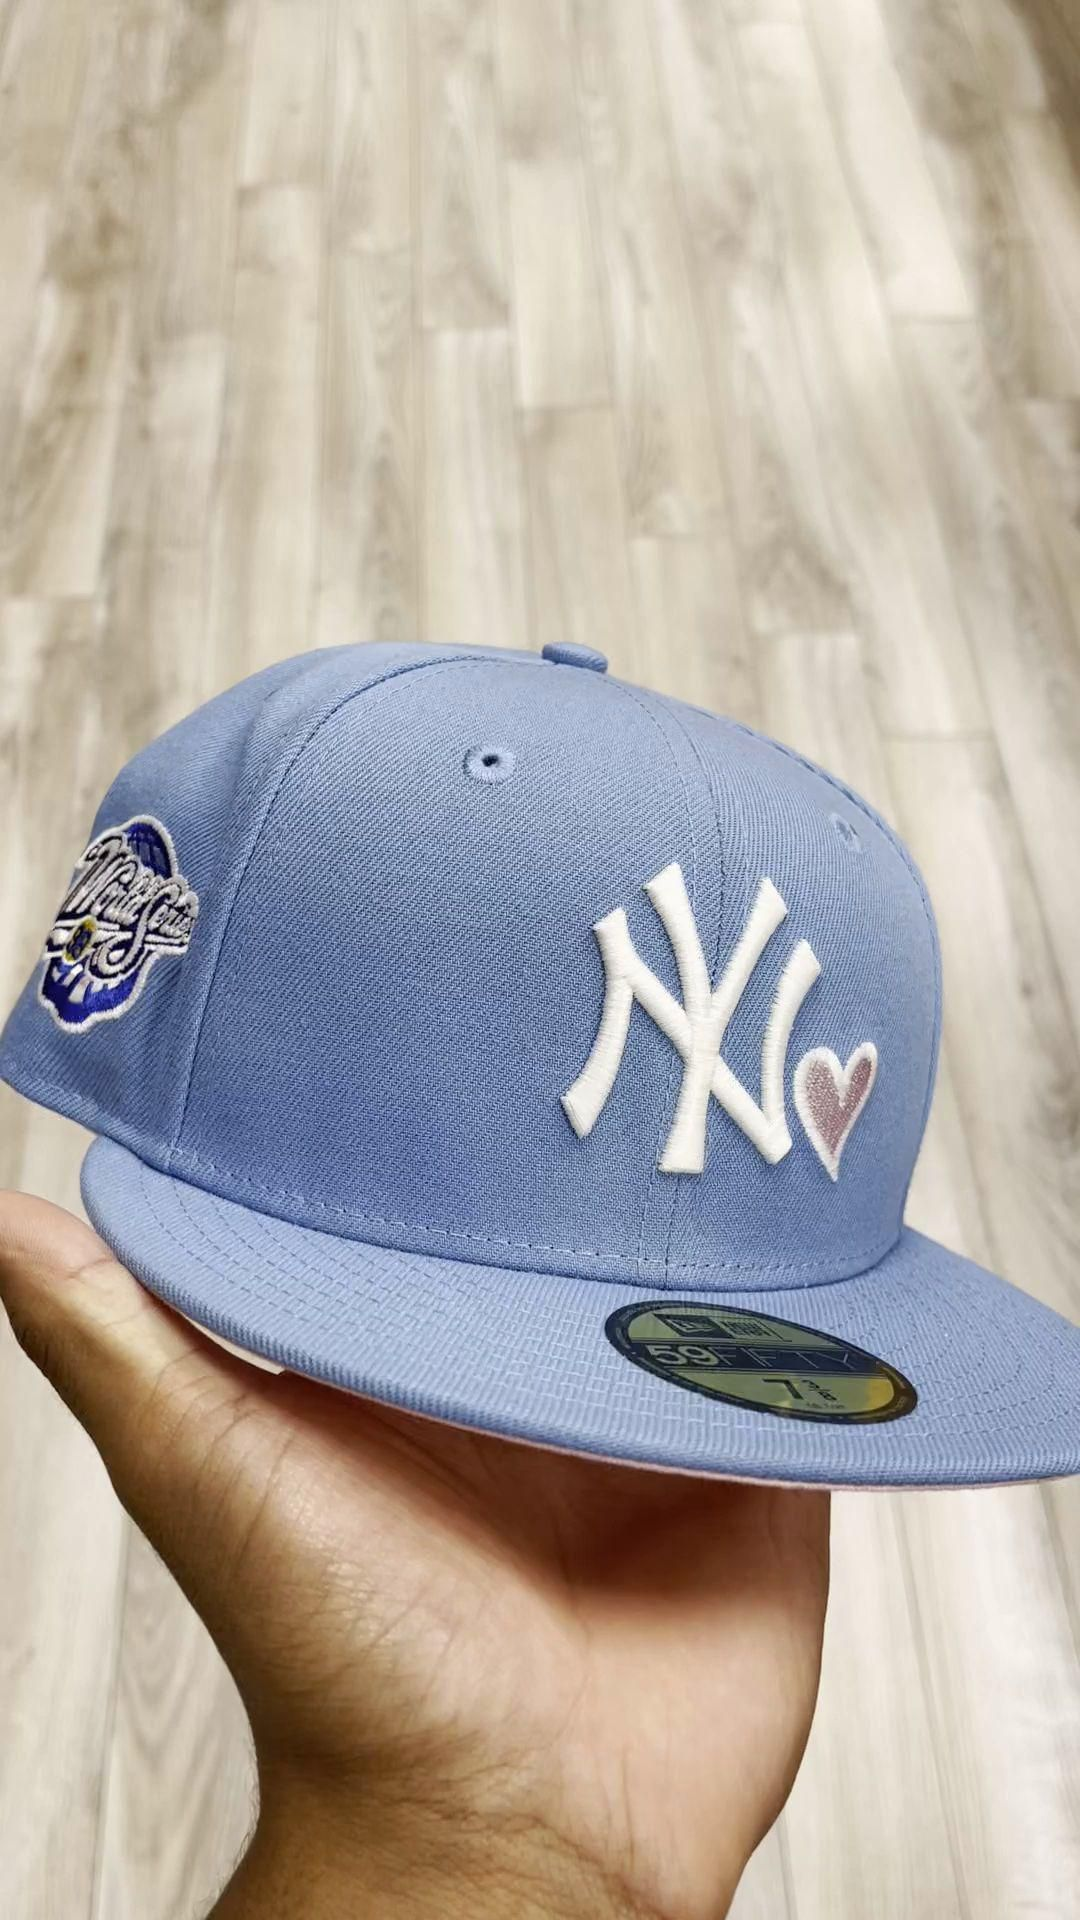 Pin By Bxby Michi 3 On Beanies Video In 2021 Fitted Hats Cute Hats New Era Fitted